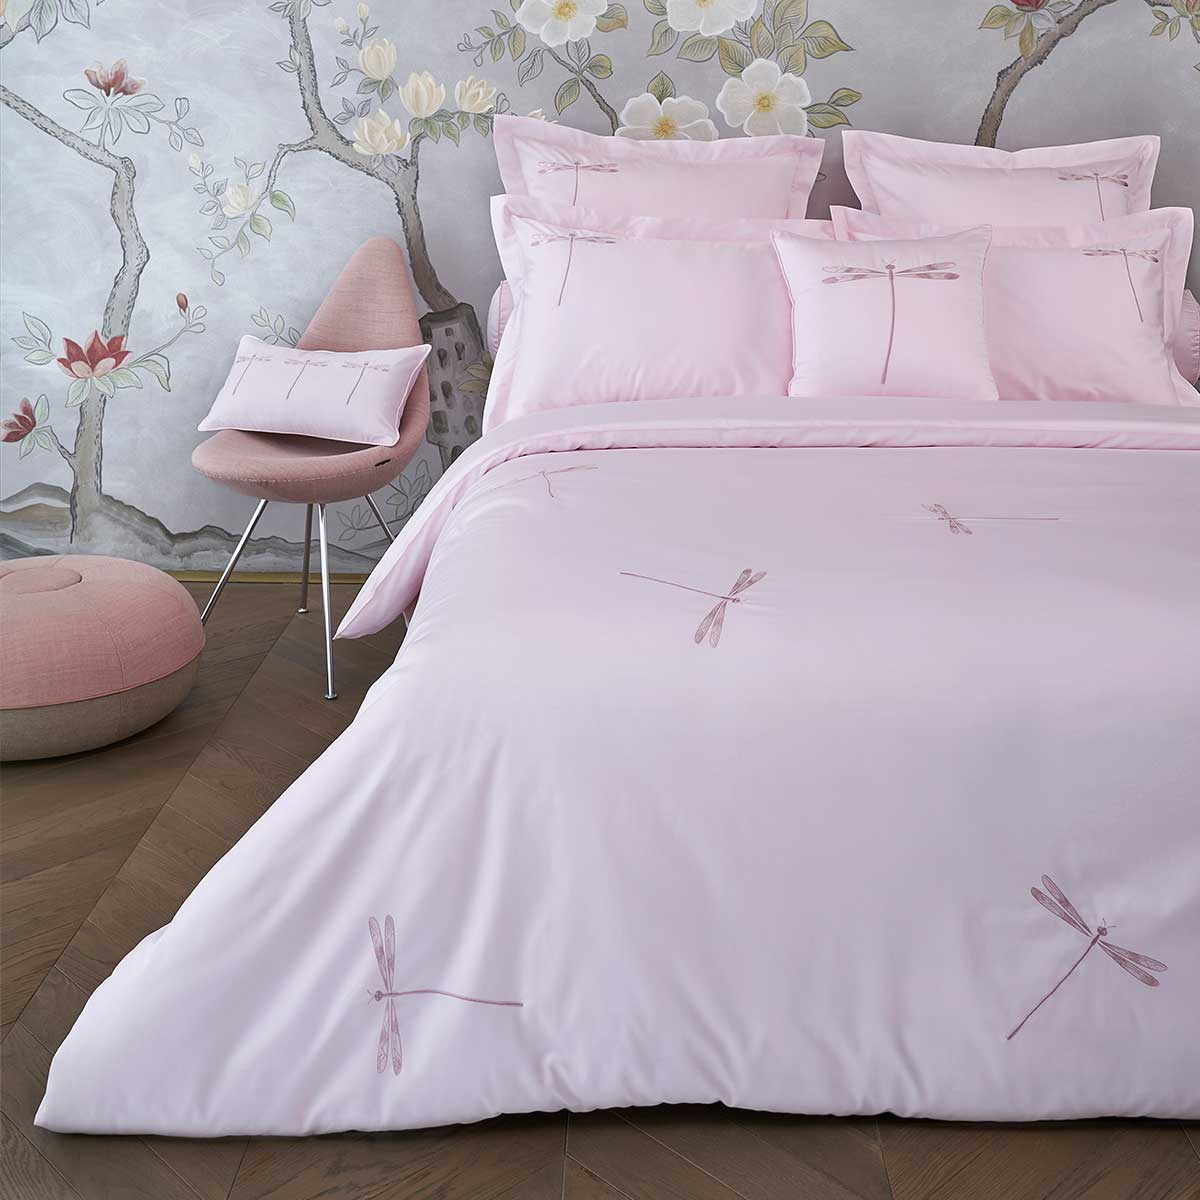 dragonfly duvet cover paradise pink